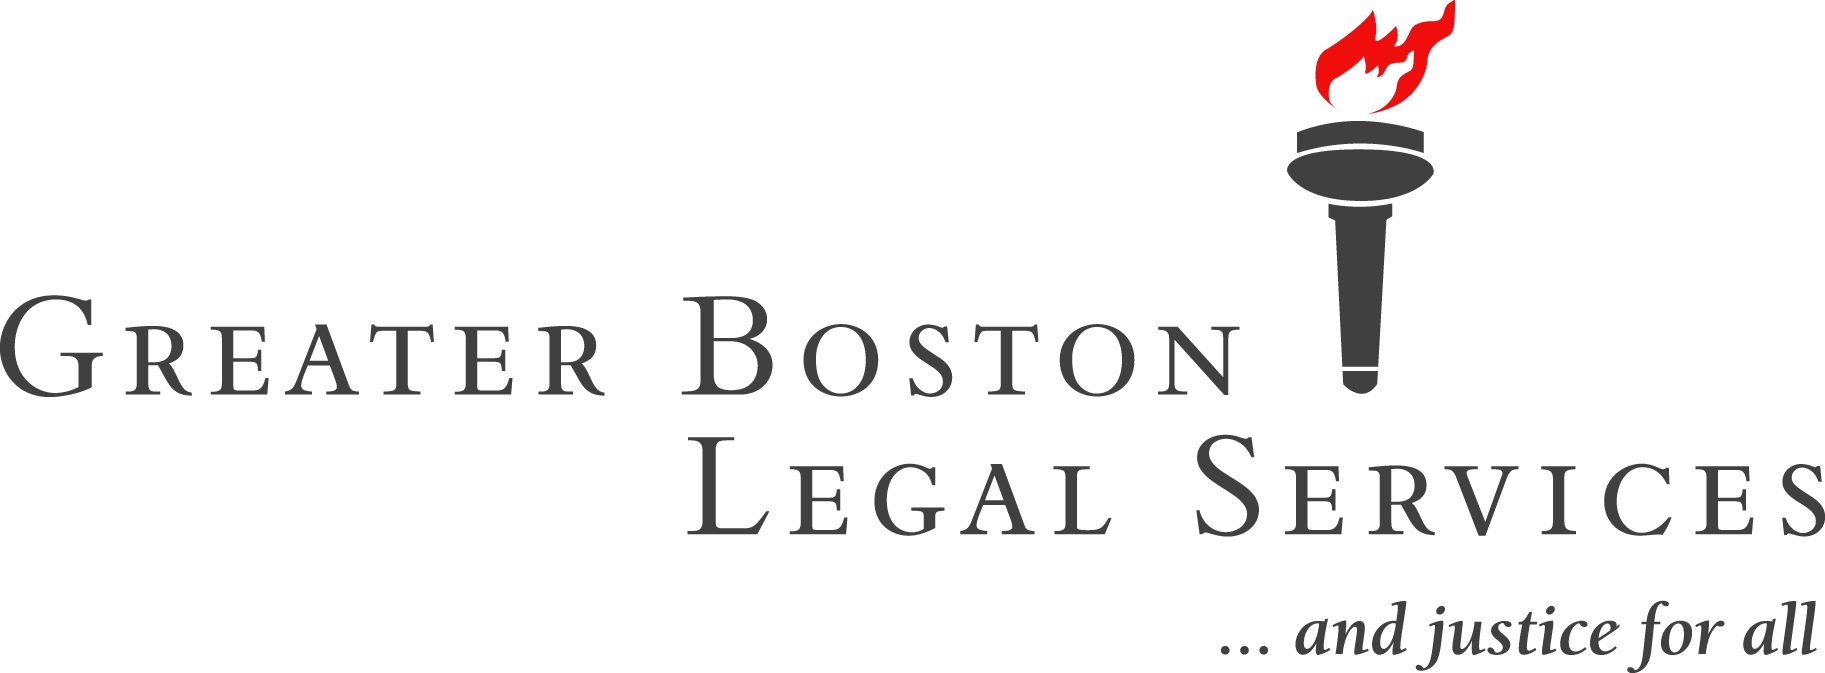 Greater Boston Legal Services torch logo